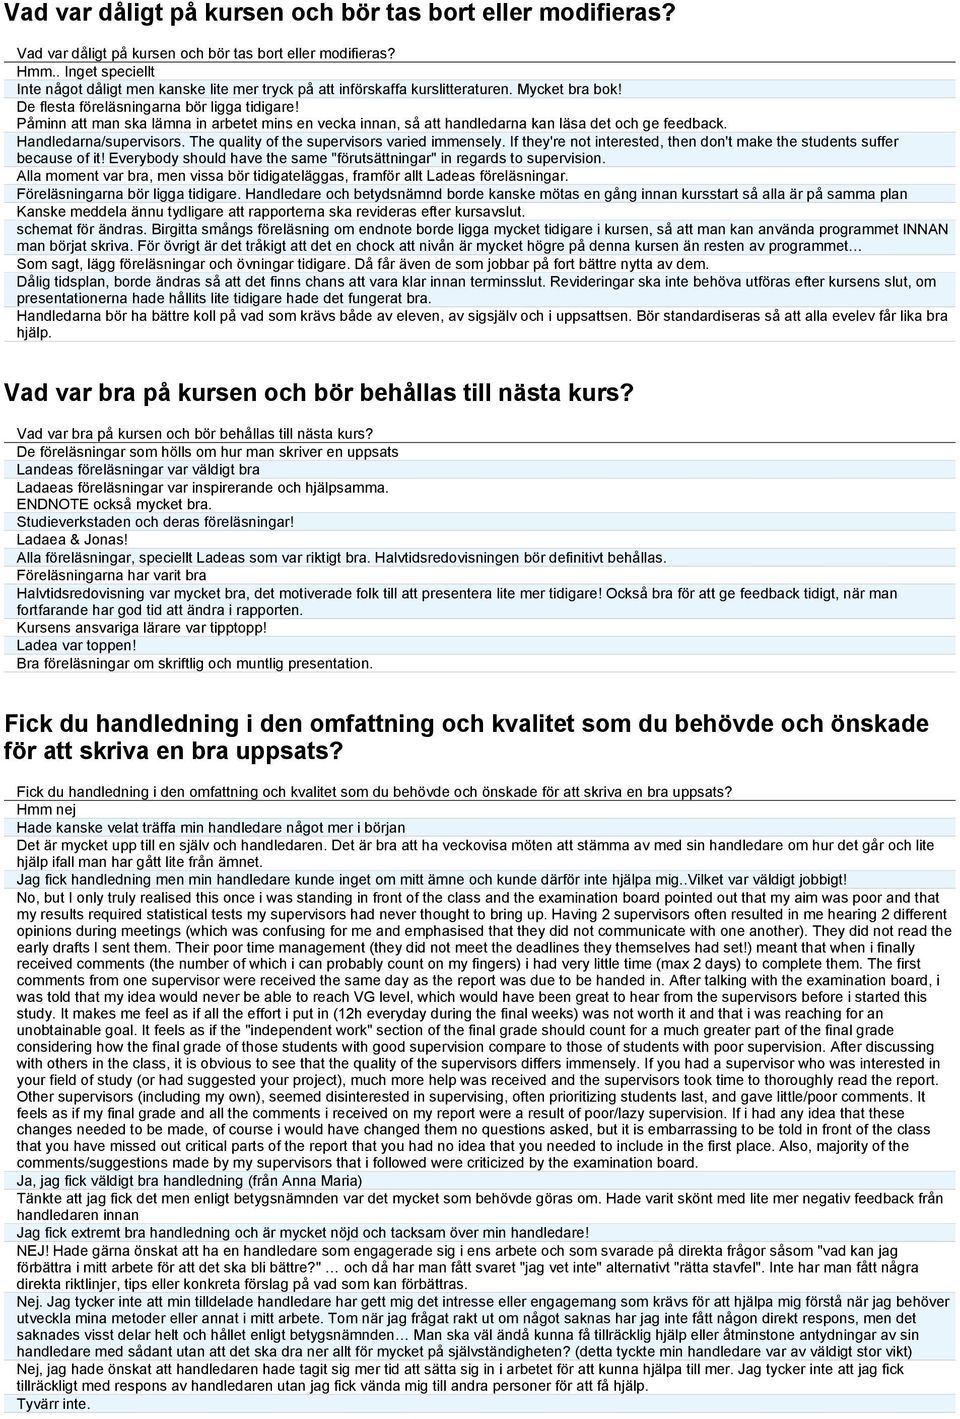 Påminn att man ska lämna in arbetet mins en vecka innan, så att handledarna kan läsa det och ge feedback. Handledarna/supervisors. The quality of the supervisors varied immensely.